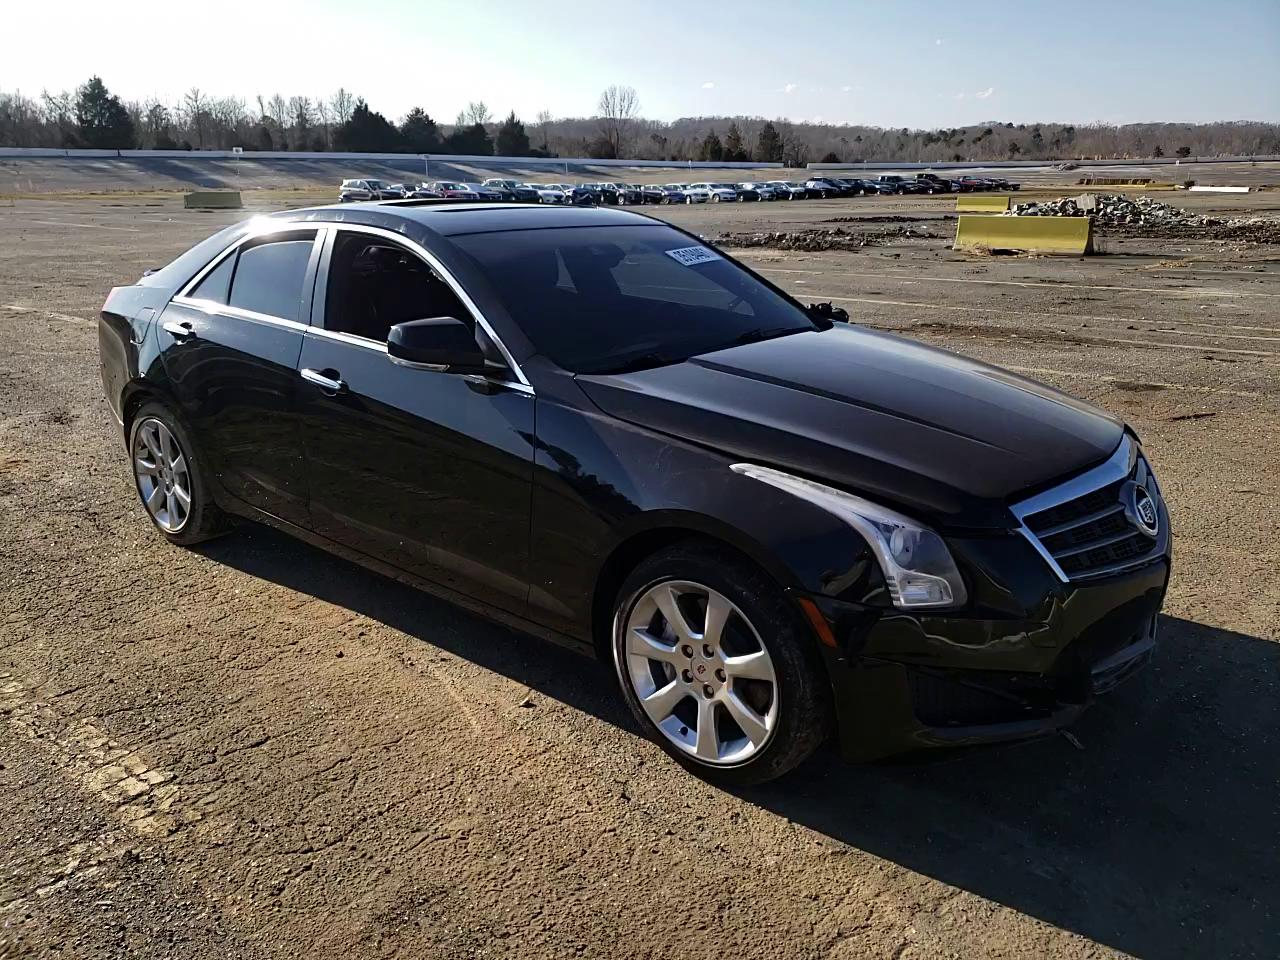 2013 CADILLAC ATS LUXURY - Other View